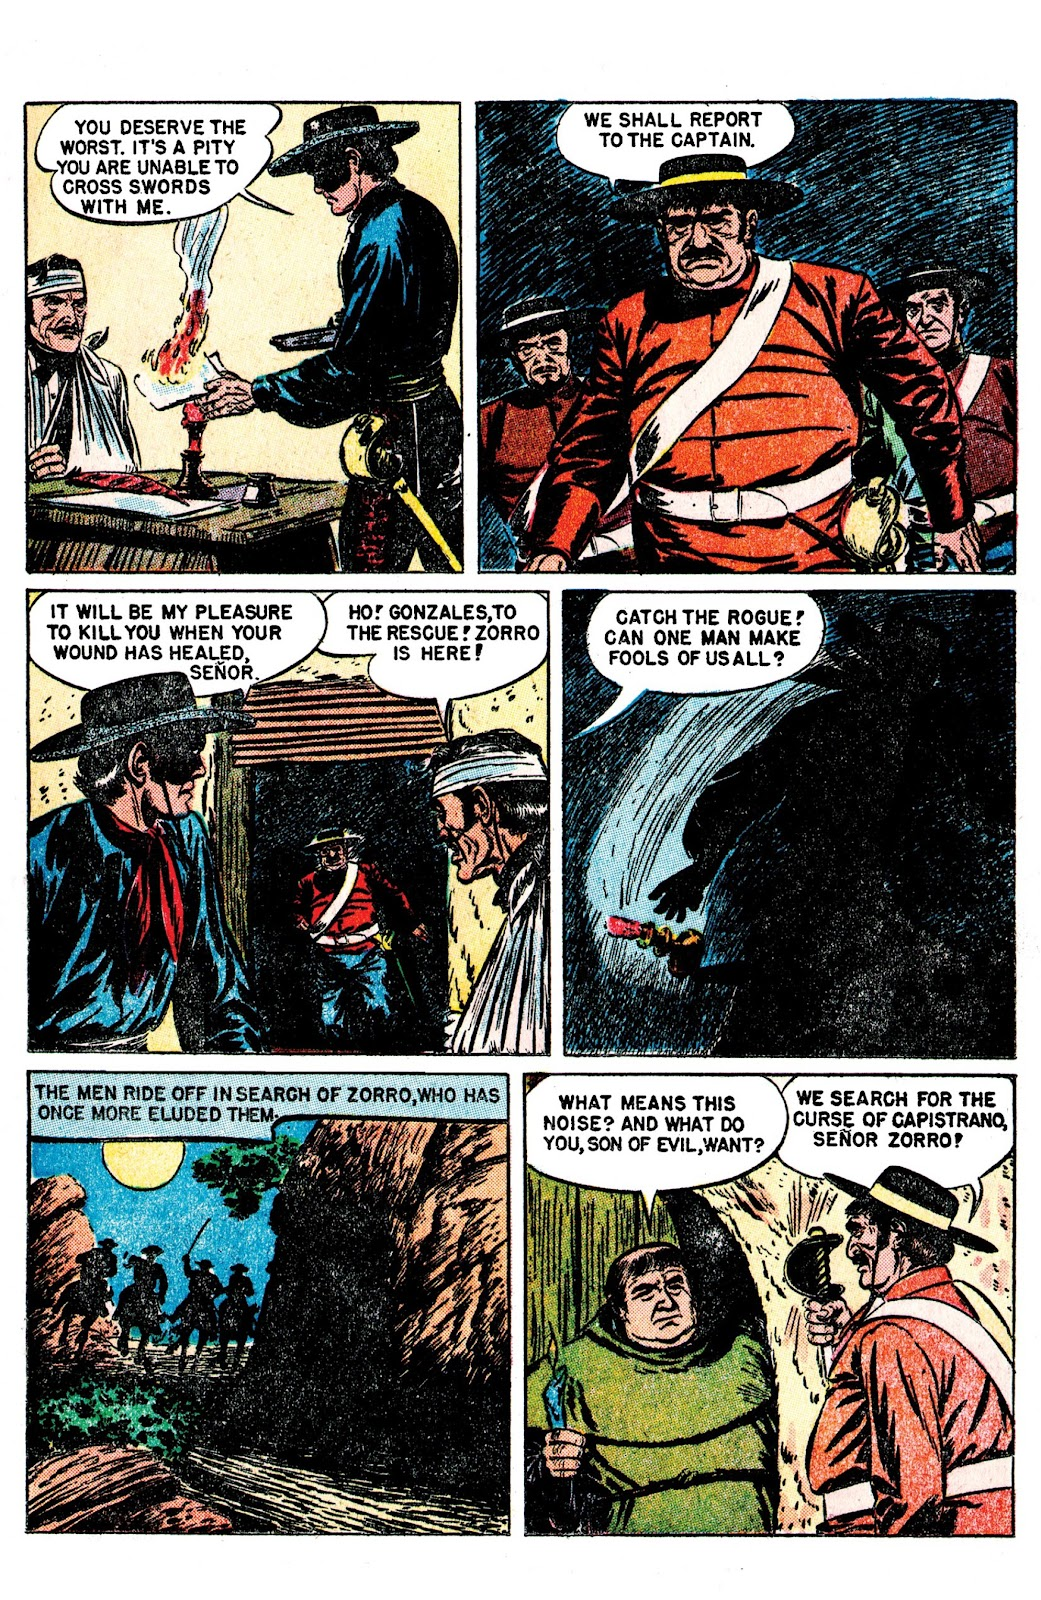 Read online AM Archives: The Mark of Zorro #1 1949 Dell Edition comic -  Issue #1 1949 Dell Edition Full - 21